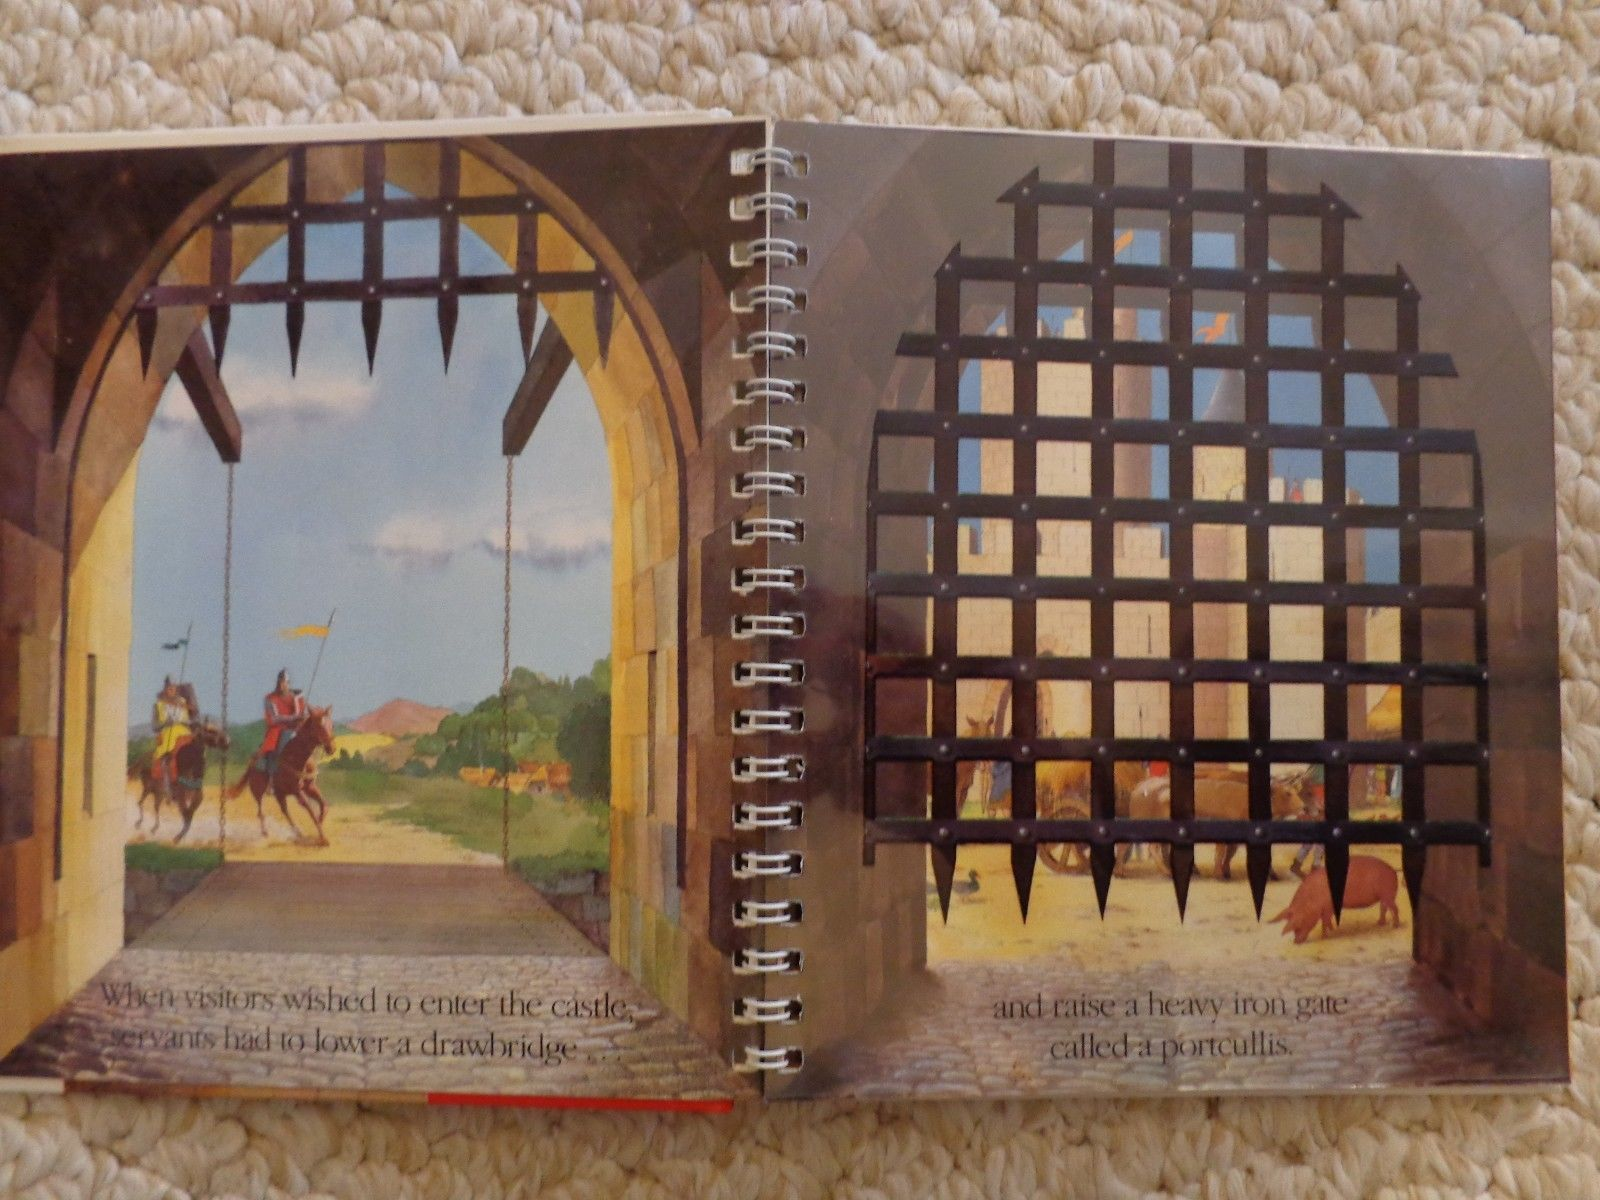 Book: Castles by Scholastic, A First Discovery Book (#1498)